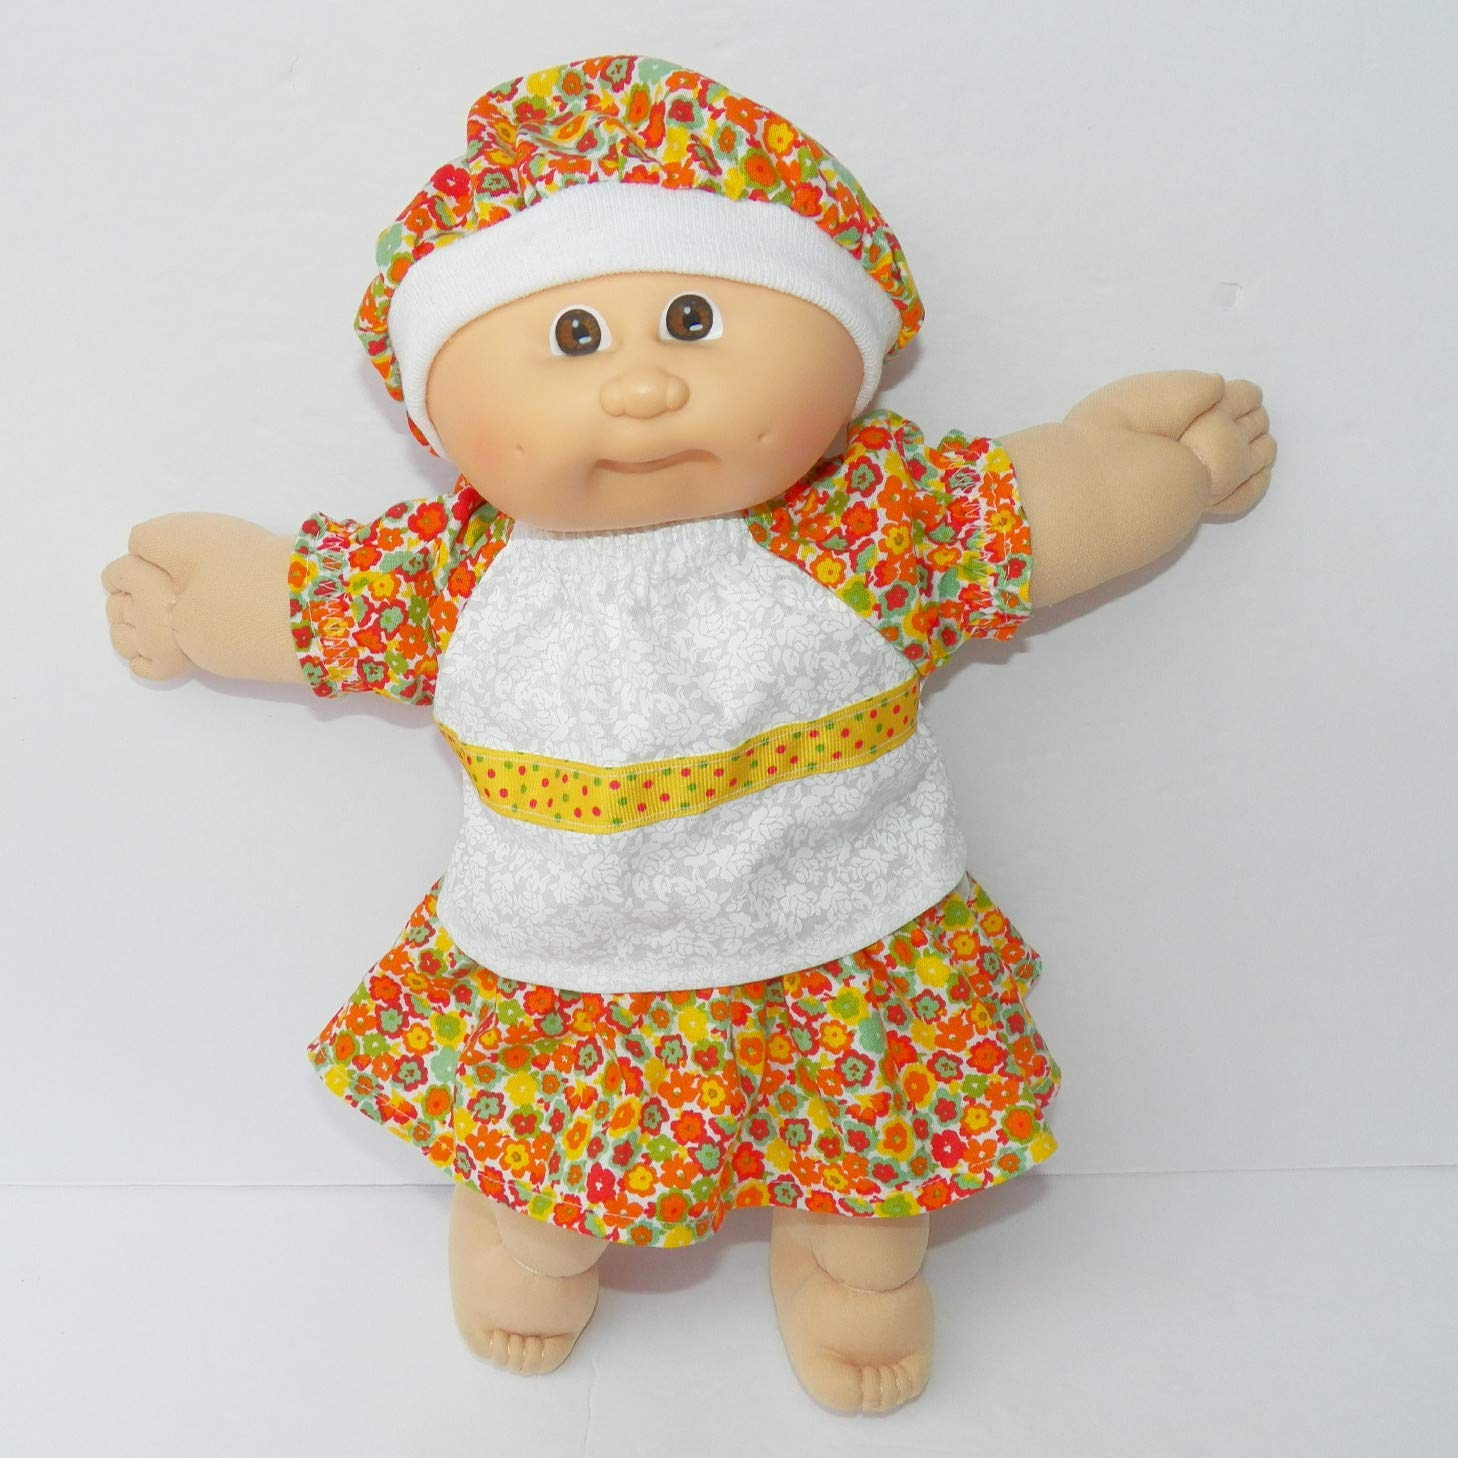 Cabbage Patch Doll Clothes 14 Inch Girl or Preemie Summer Orange Skirt Blouse Hat Clothes Only